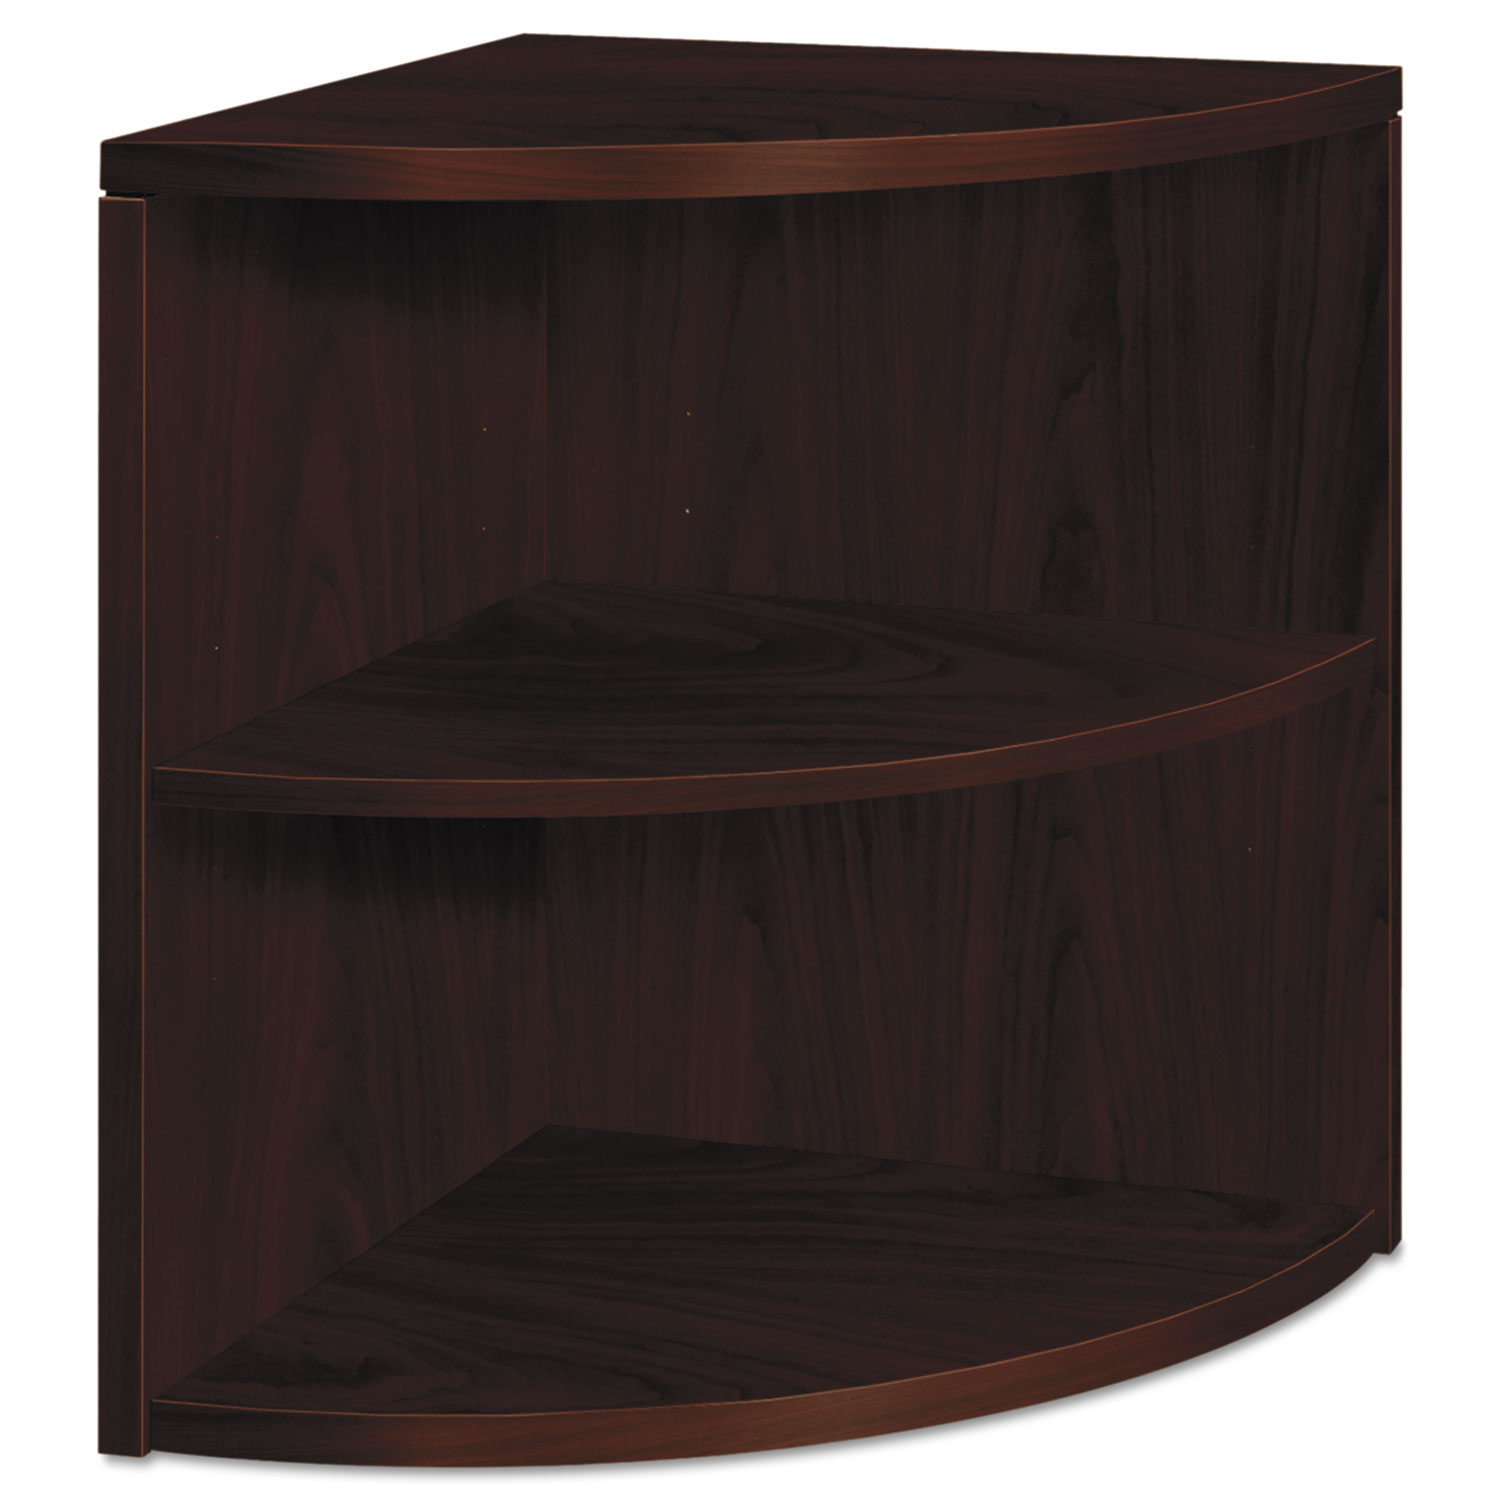 bookshelf ismaya trend throughout antique for small bookcase bookcases shelf two great addition image sale home of a in design